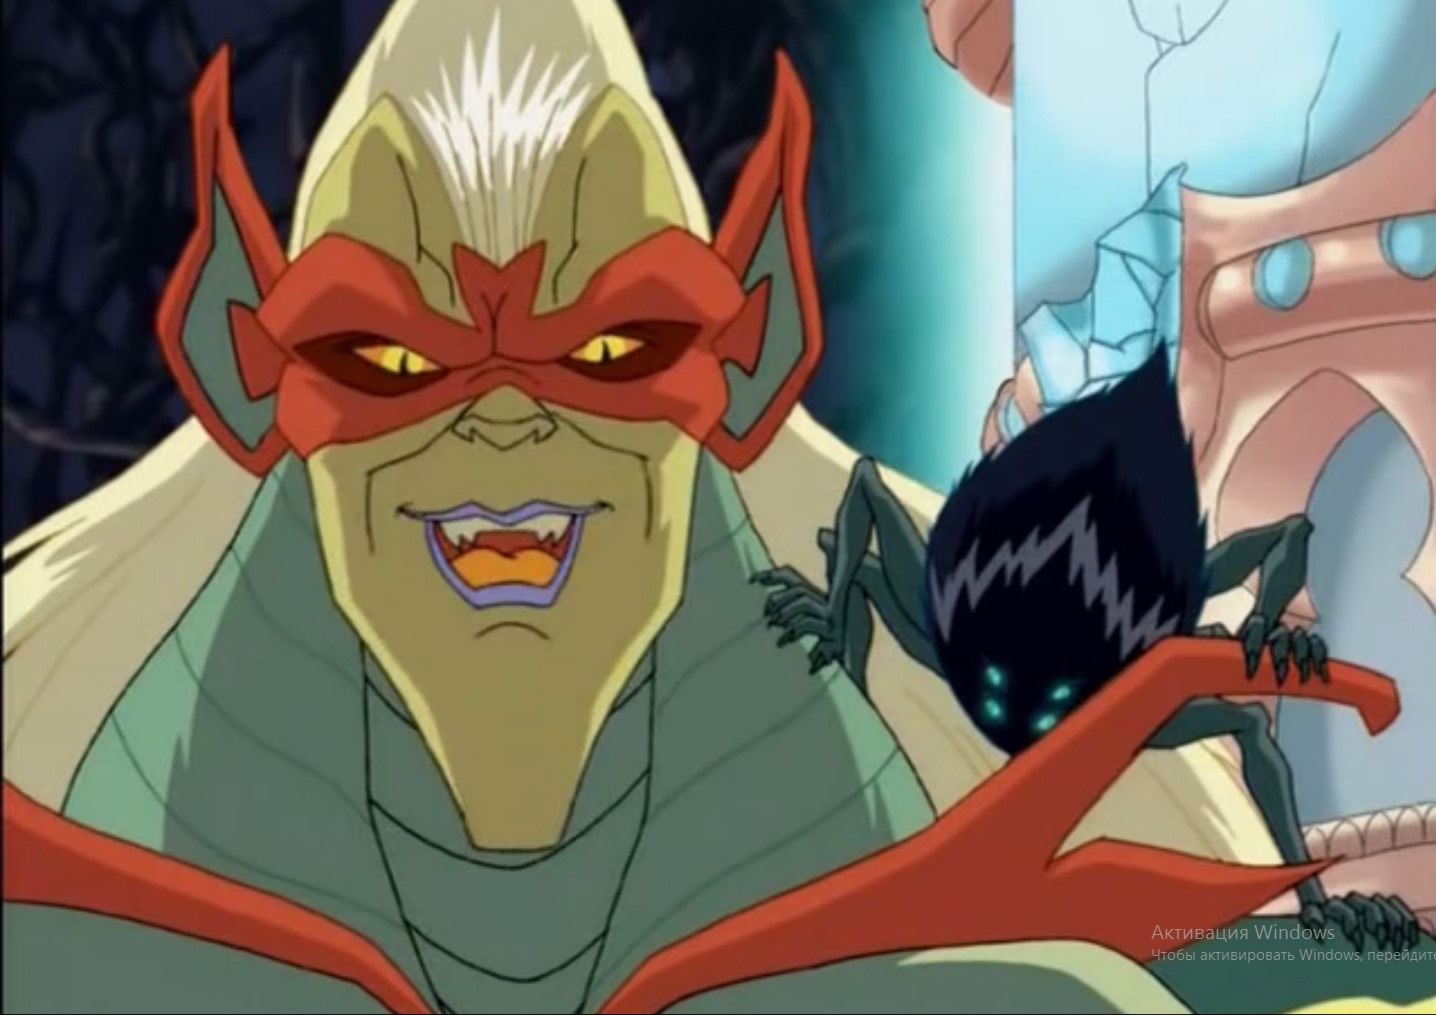 Two villains, Lord Cedric with Miranda on his shoulder from the show on Jetix W.I.T.C.H.